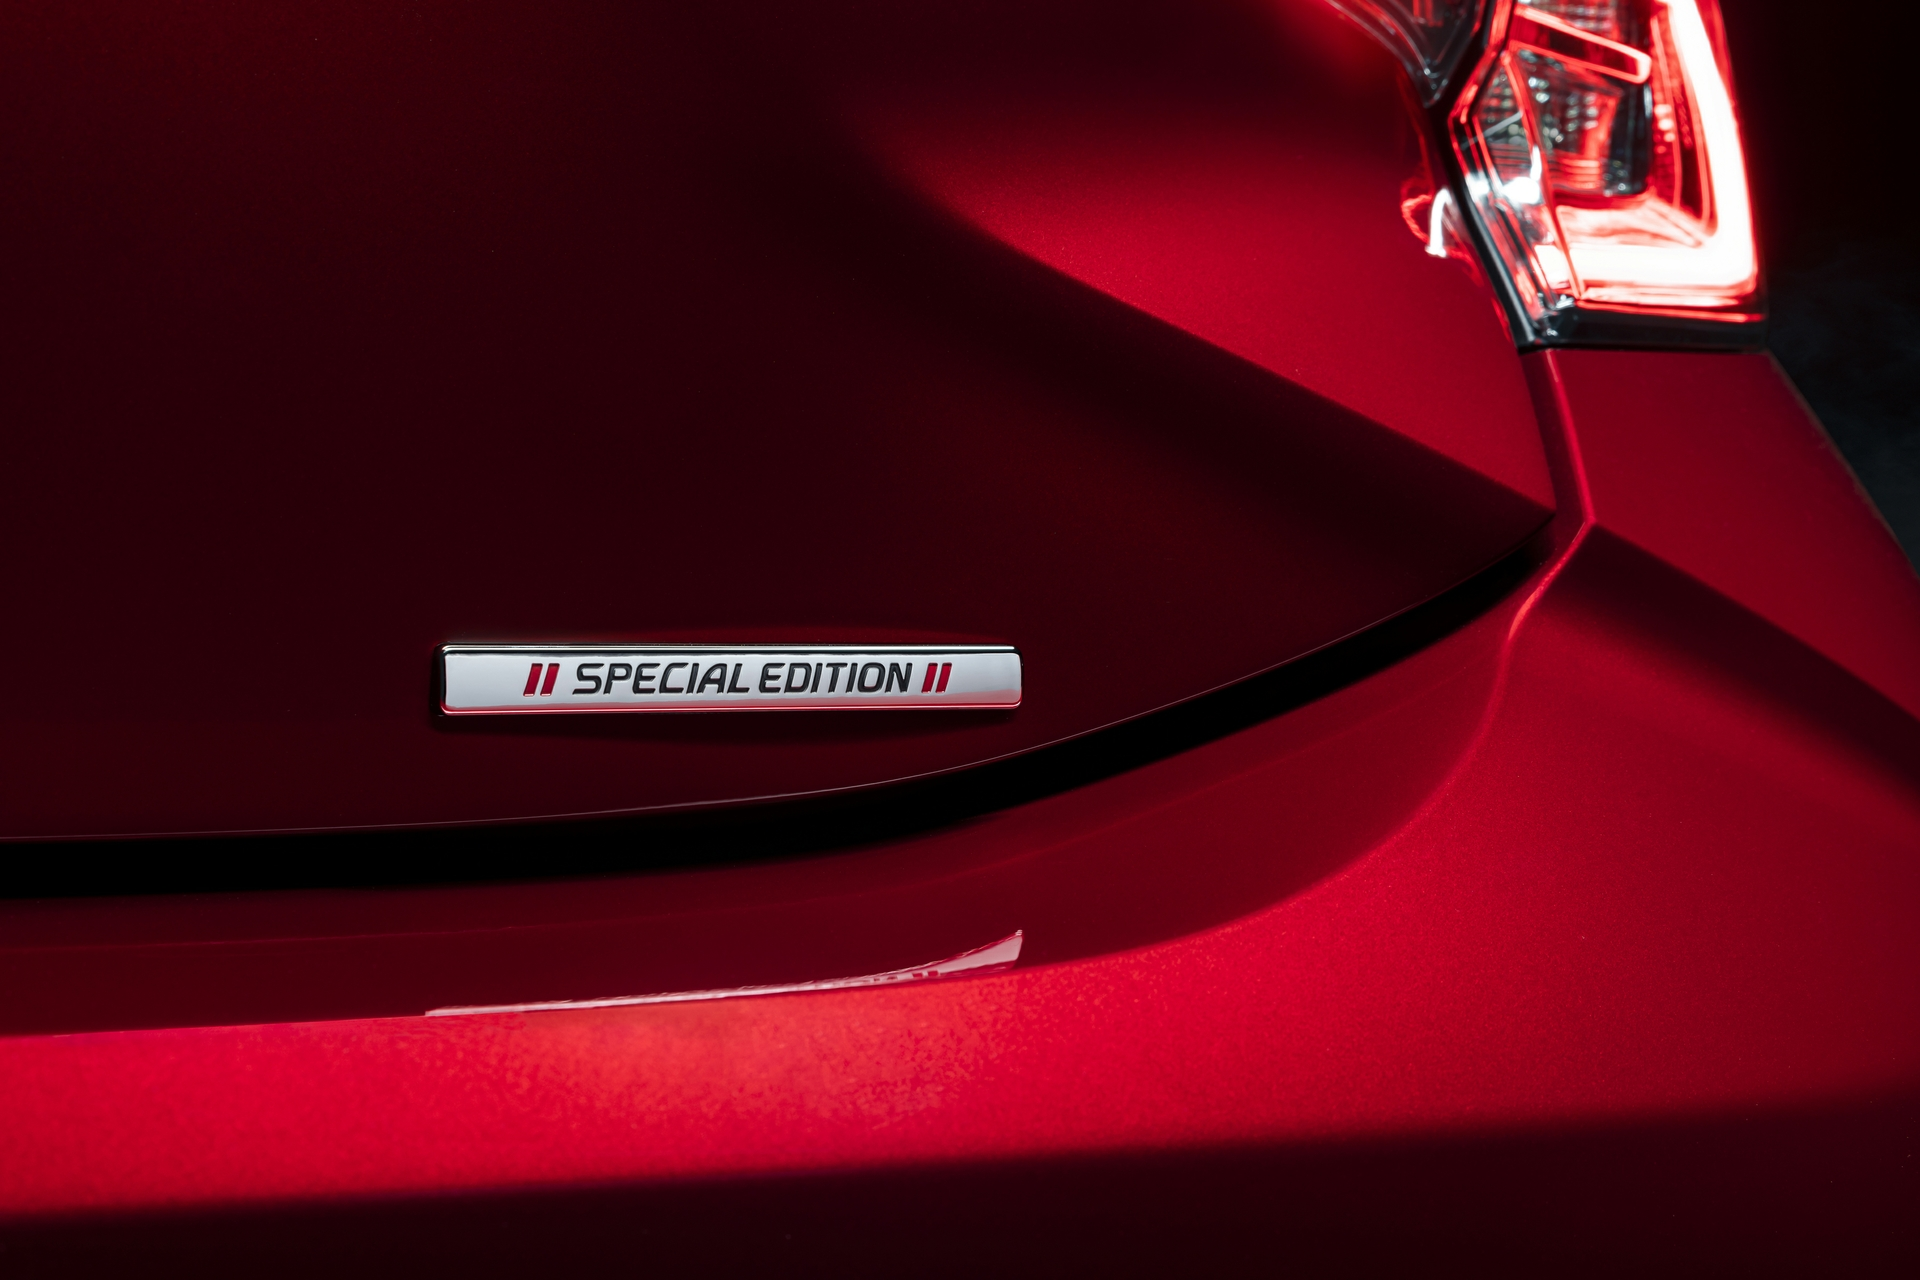 2021 Corolla Hatchback Special Edition_004